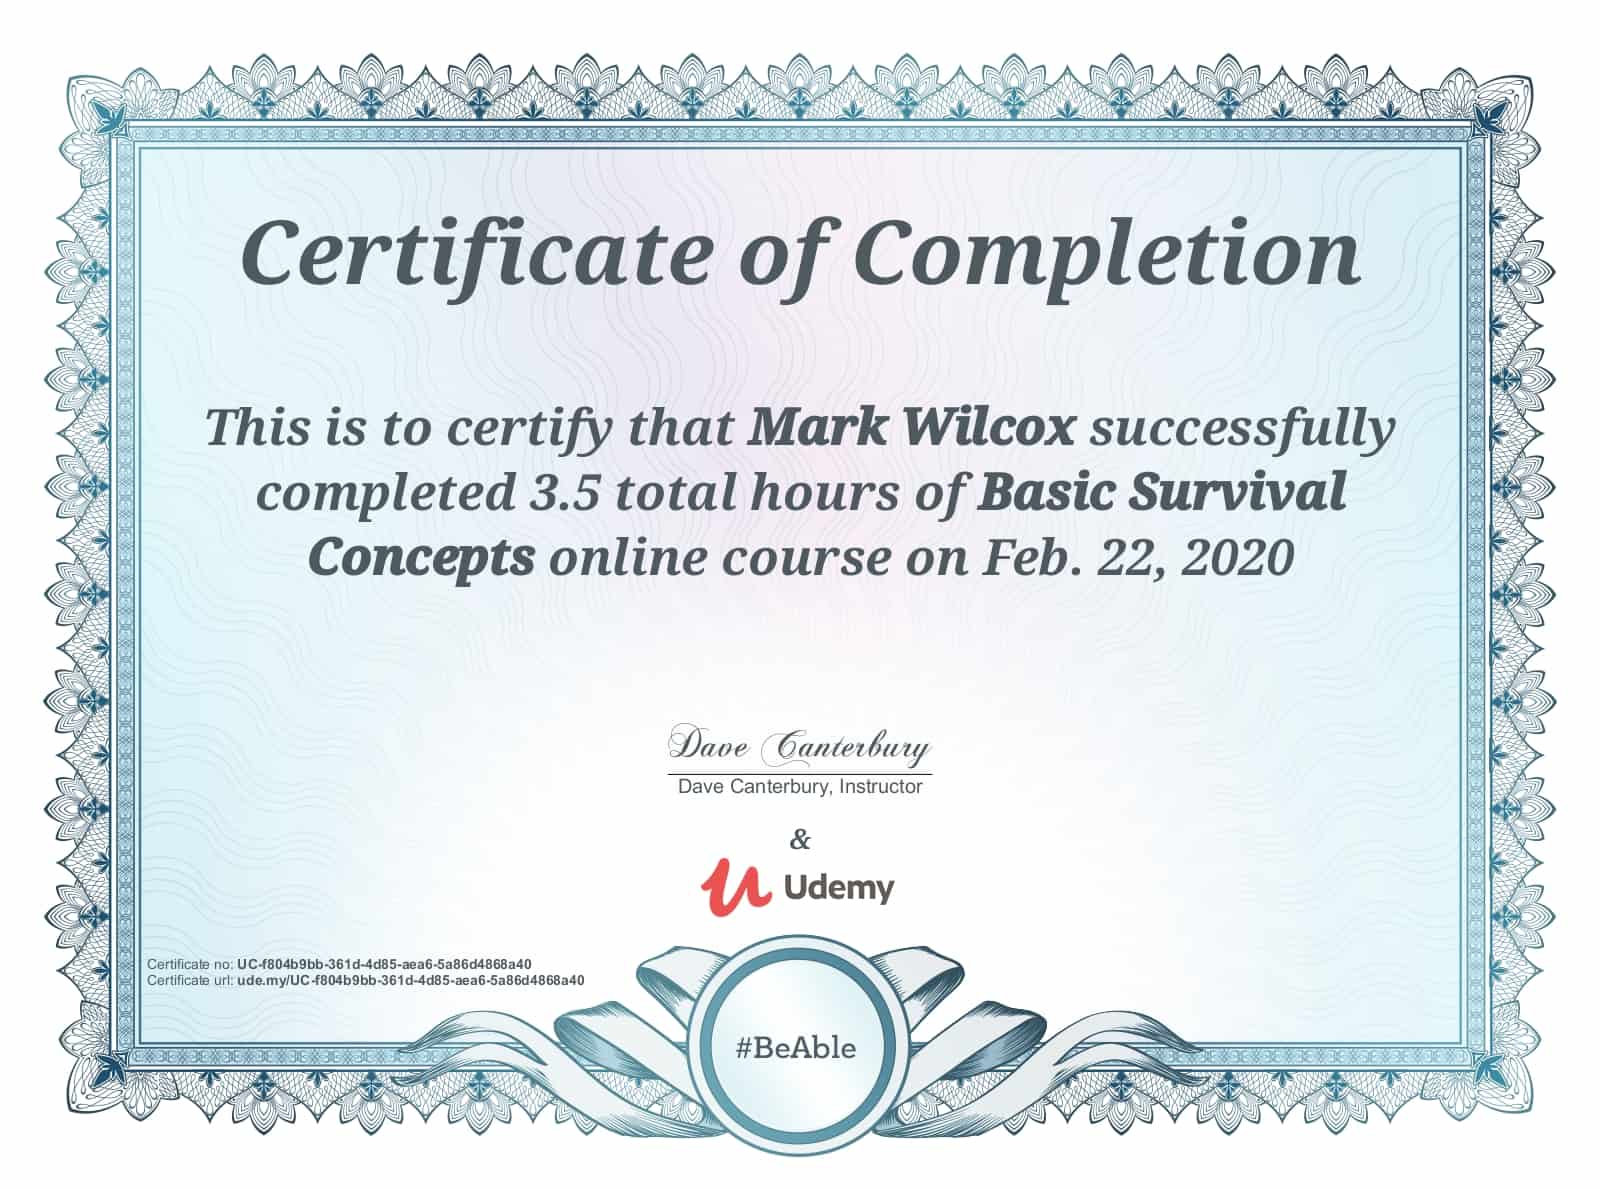 This certificate above verifies that Mark Wilcox successfully completed the course Basic Survival Concepts on 02/22/2020 as taught by Dave Canterbury on Udemy.